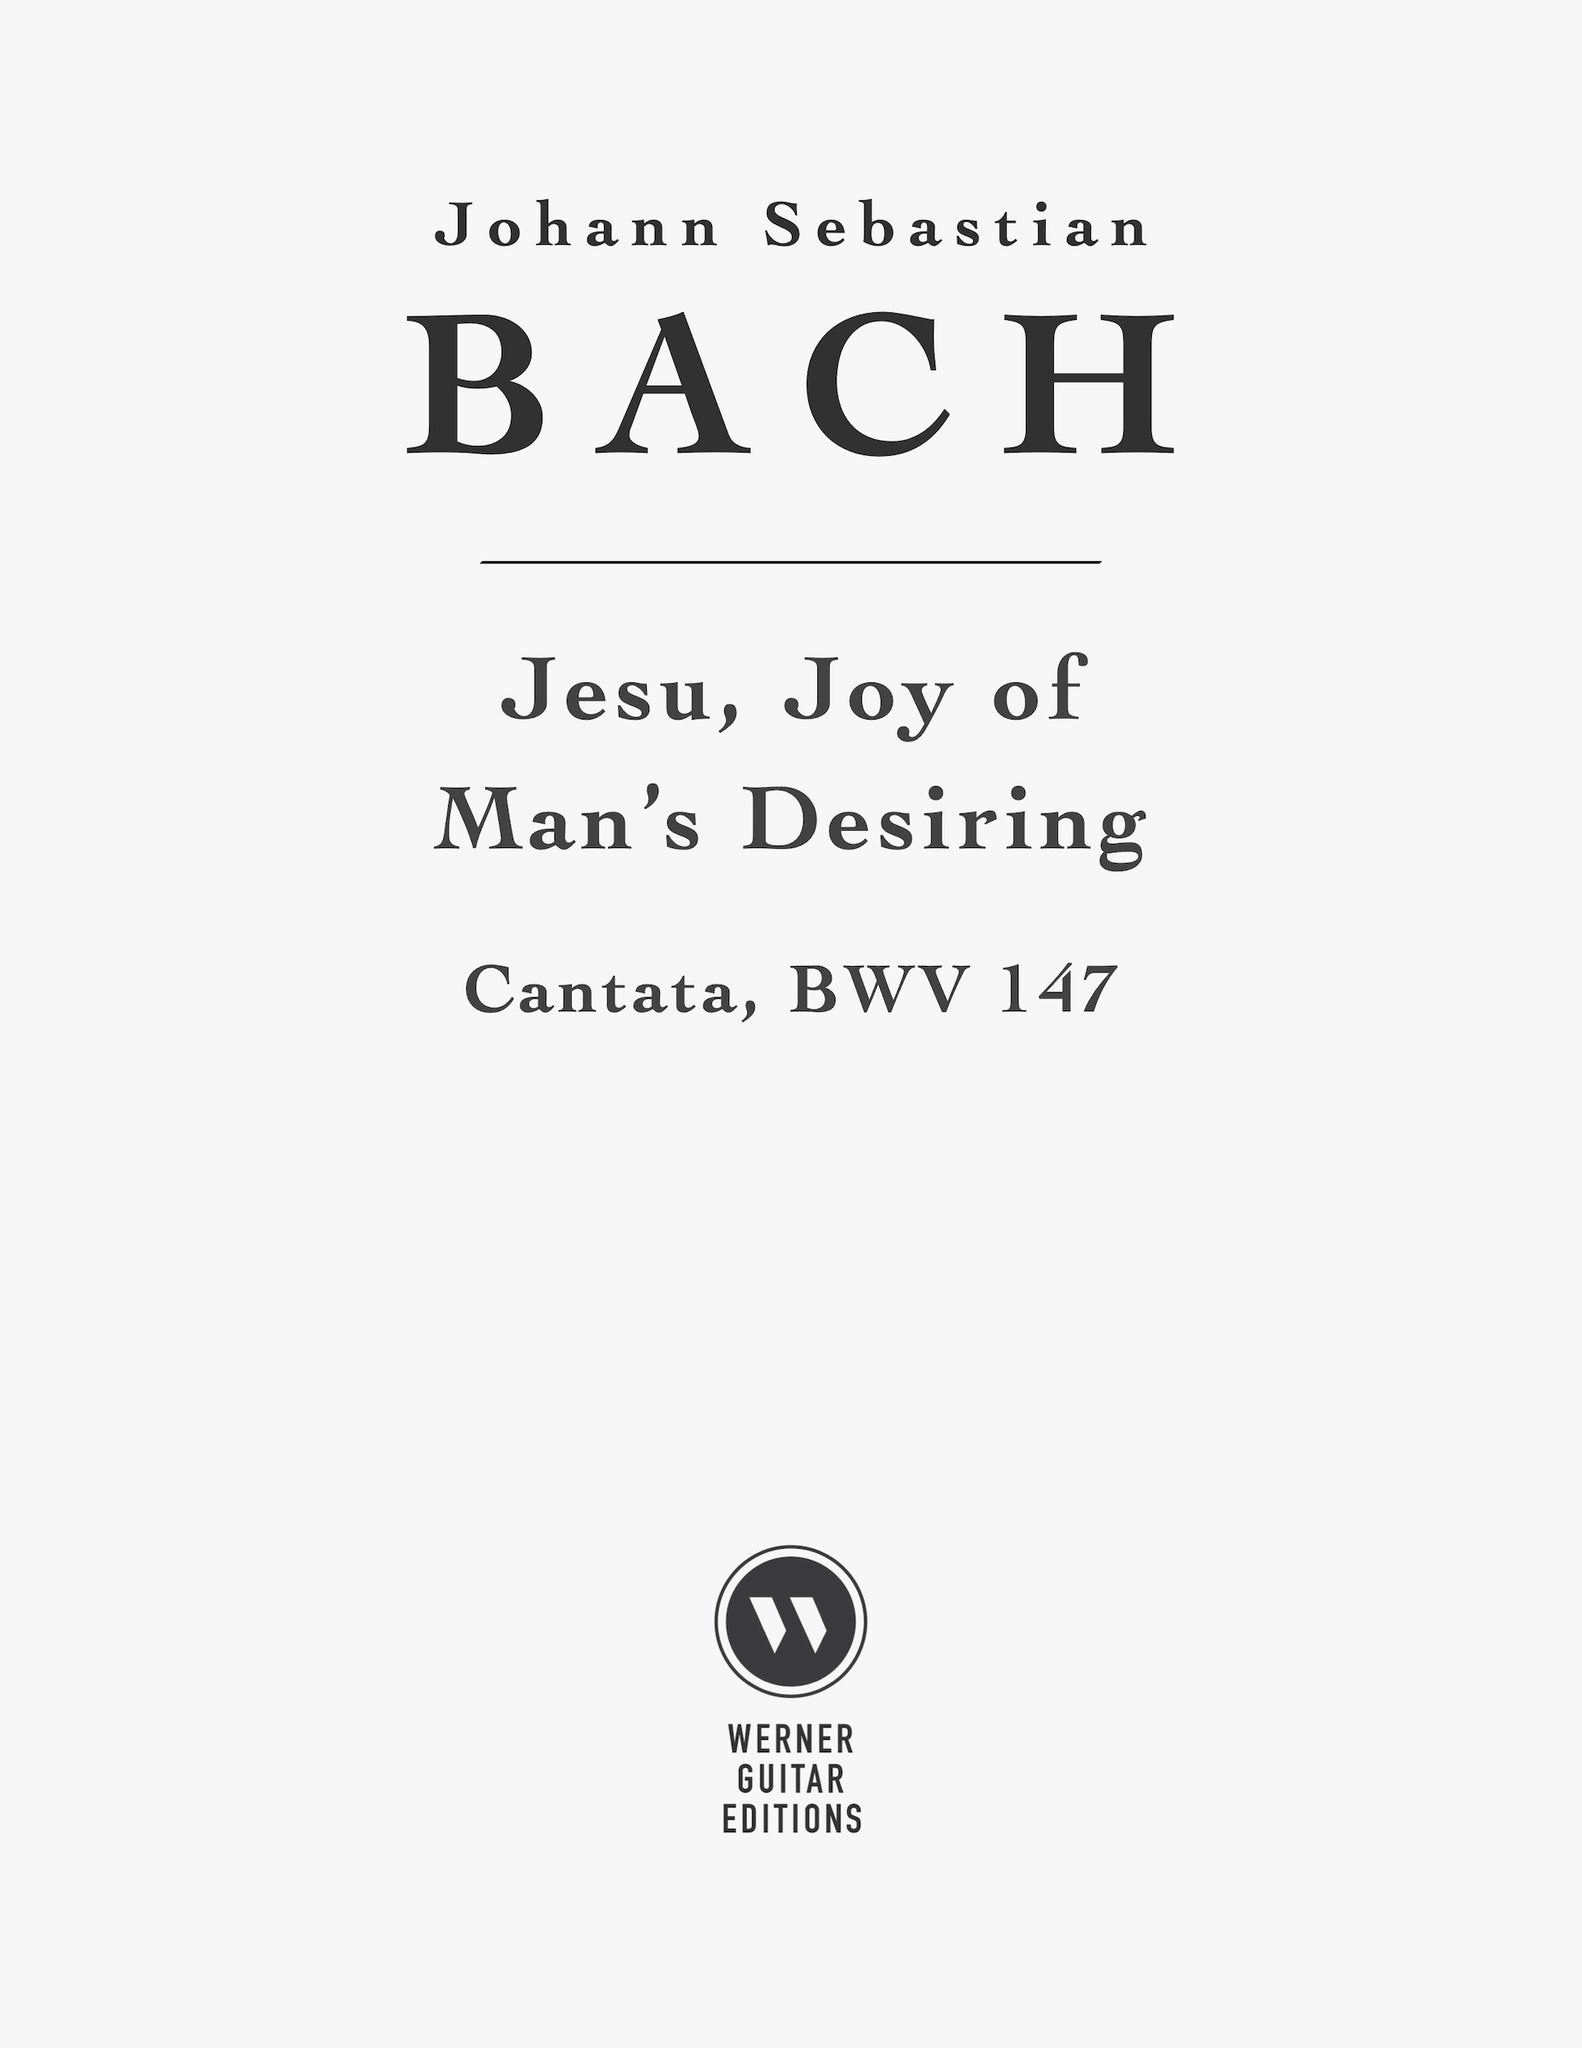 Jesu, Joy of Man's Desiring by Bach for Guitar (Free PDF)